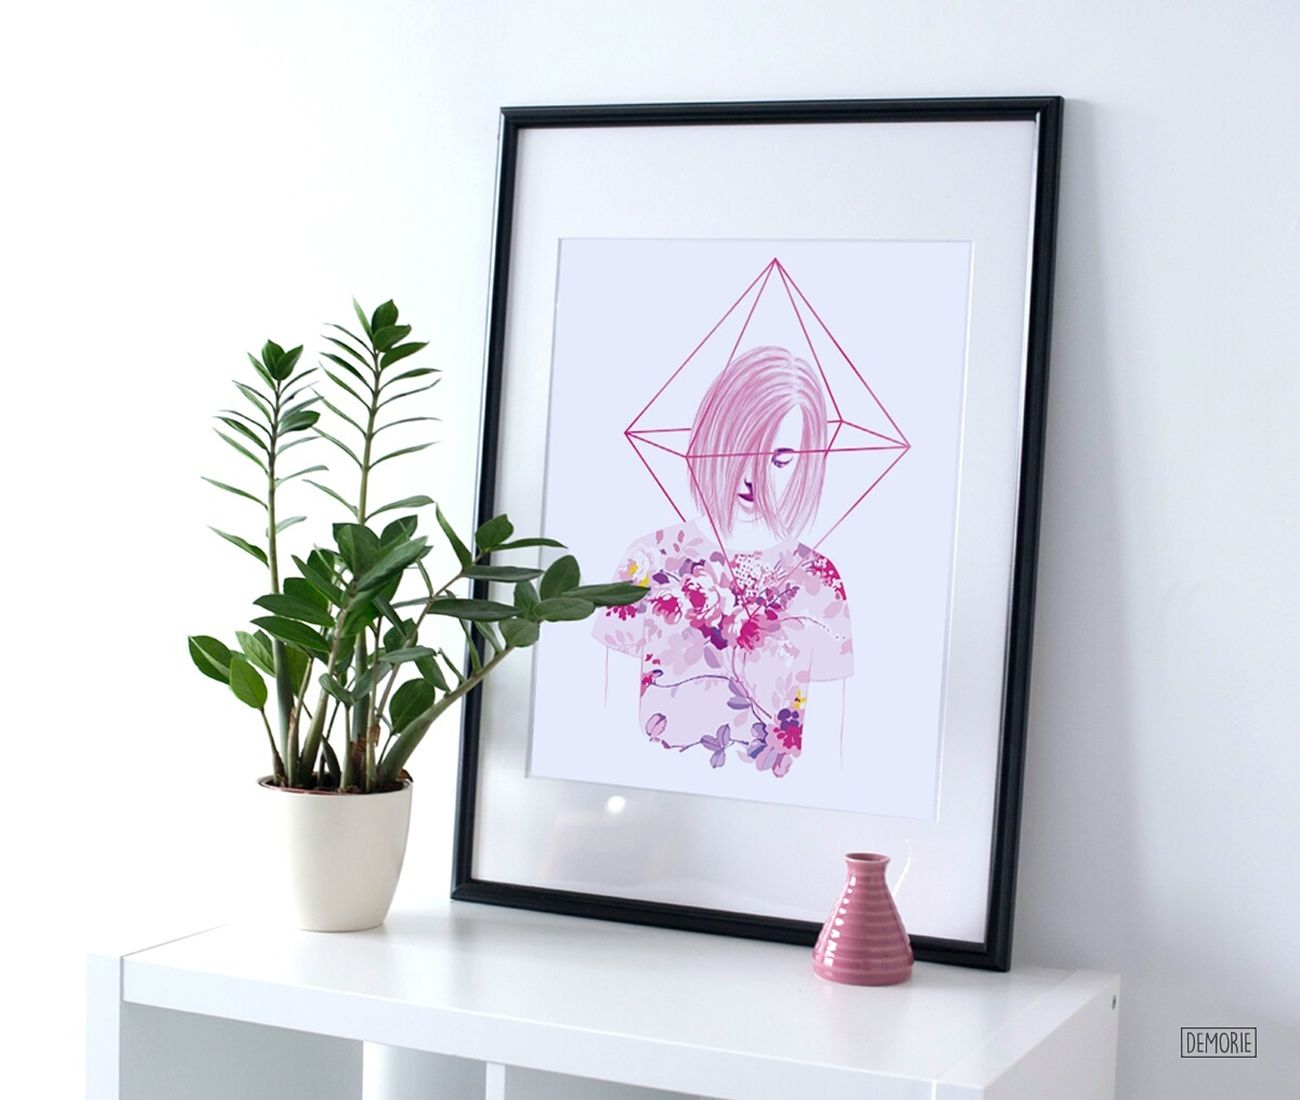 """Young Heart"" - Decor :) Art Gallery Decoration Design Illustration Printing Gallery ArtWork Drawing Women Creative Beauty Girl Only Women Painting Artgallery White Background My Artwork Creativity Stamps Watercolor Drawings Artist Digital Art Photoshop Portrait"